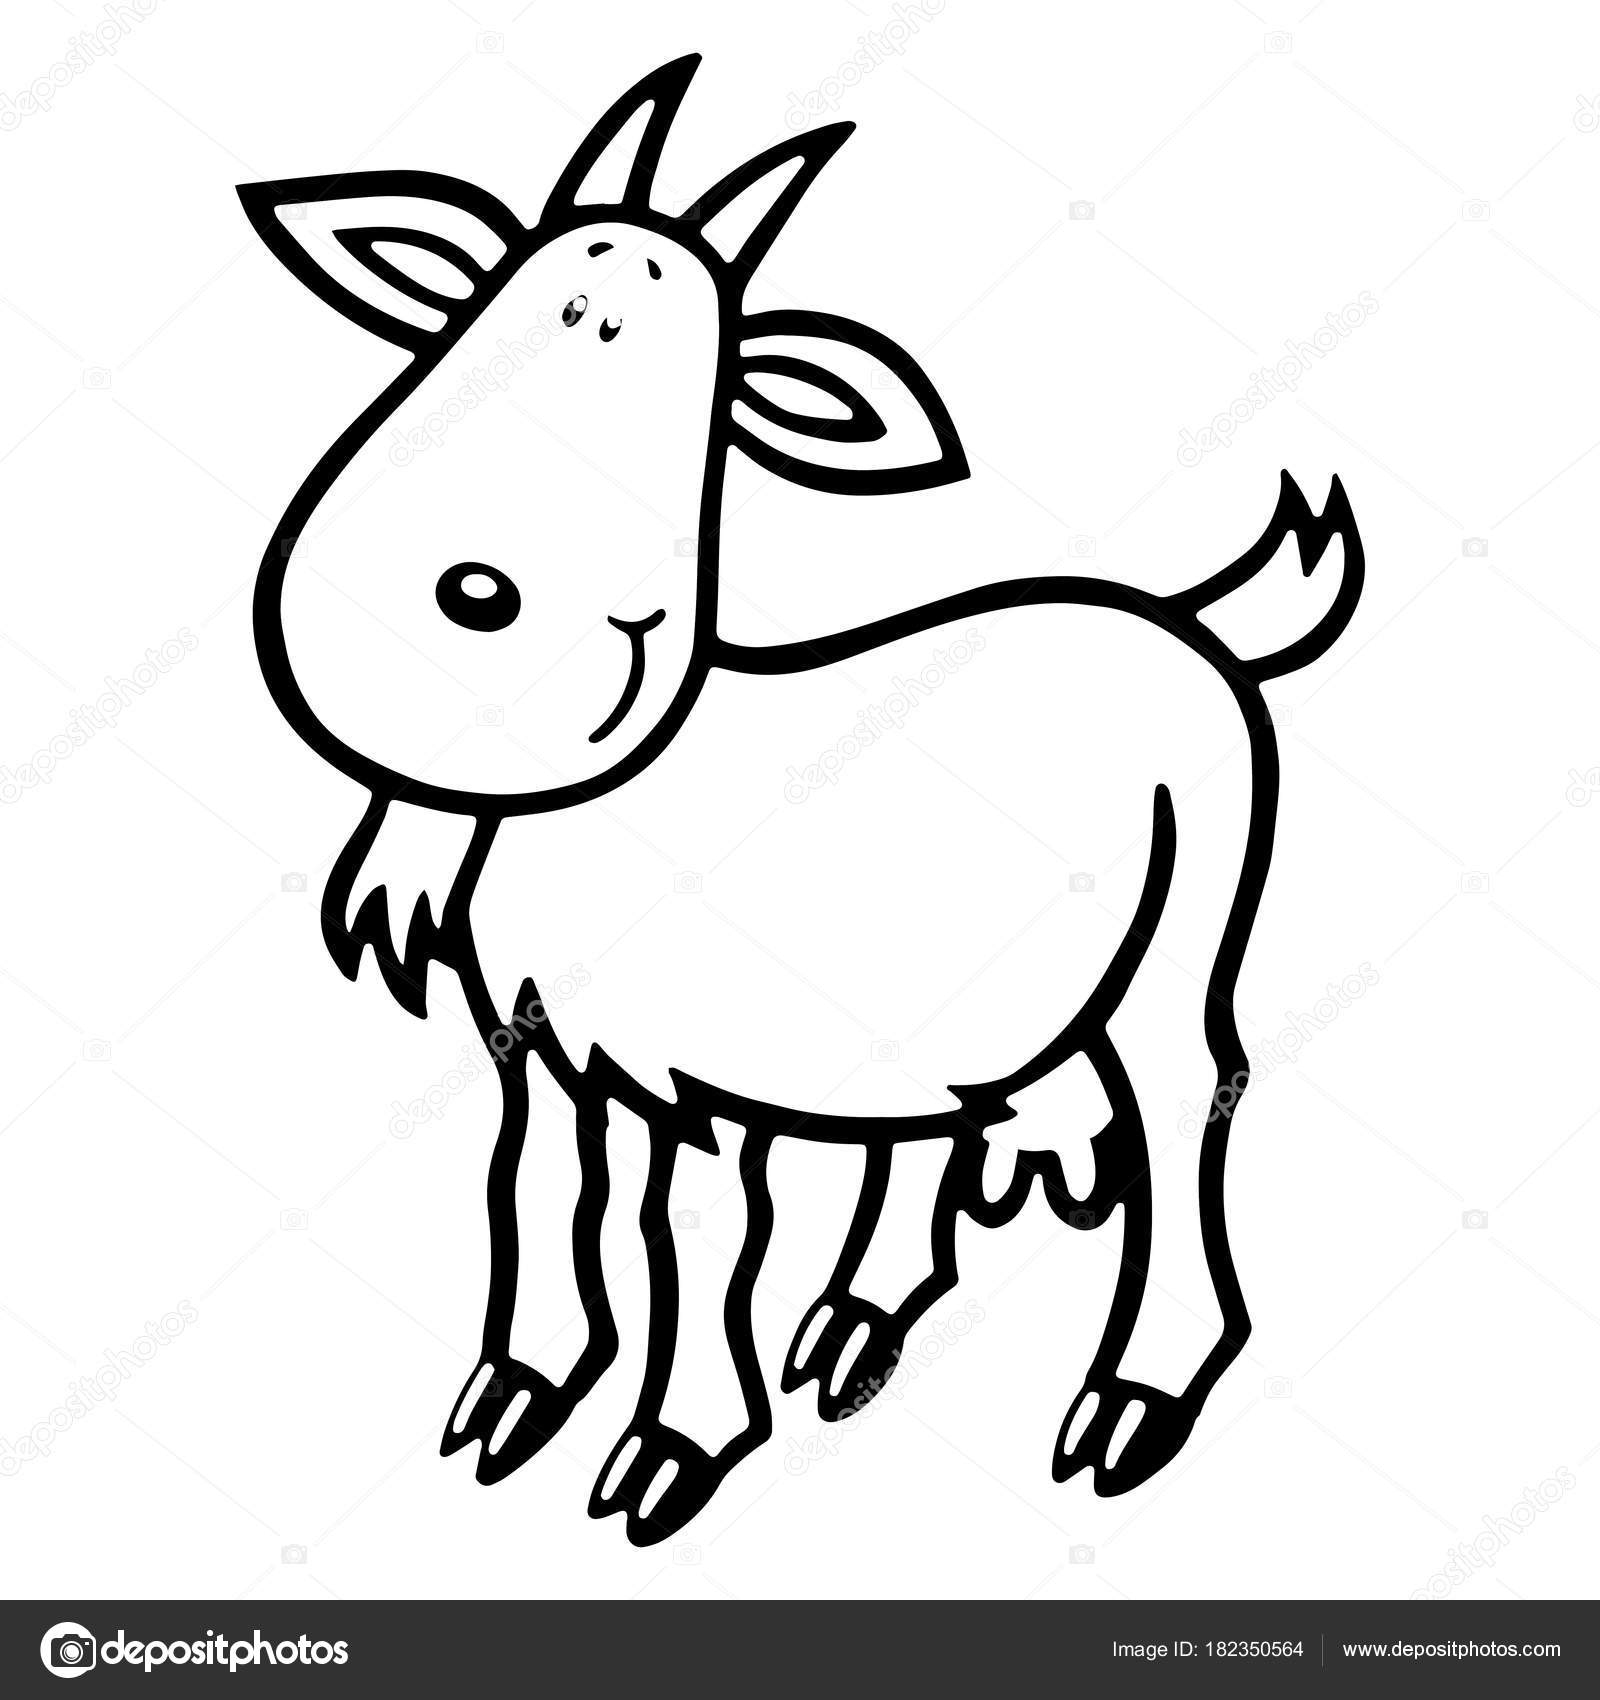 goat picture cartoon animated goat png transparent animated goatpng images picture cartoon goat